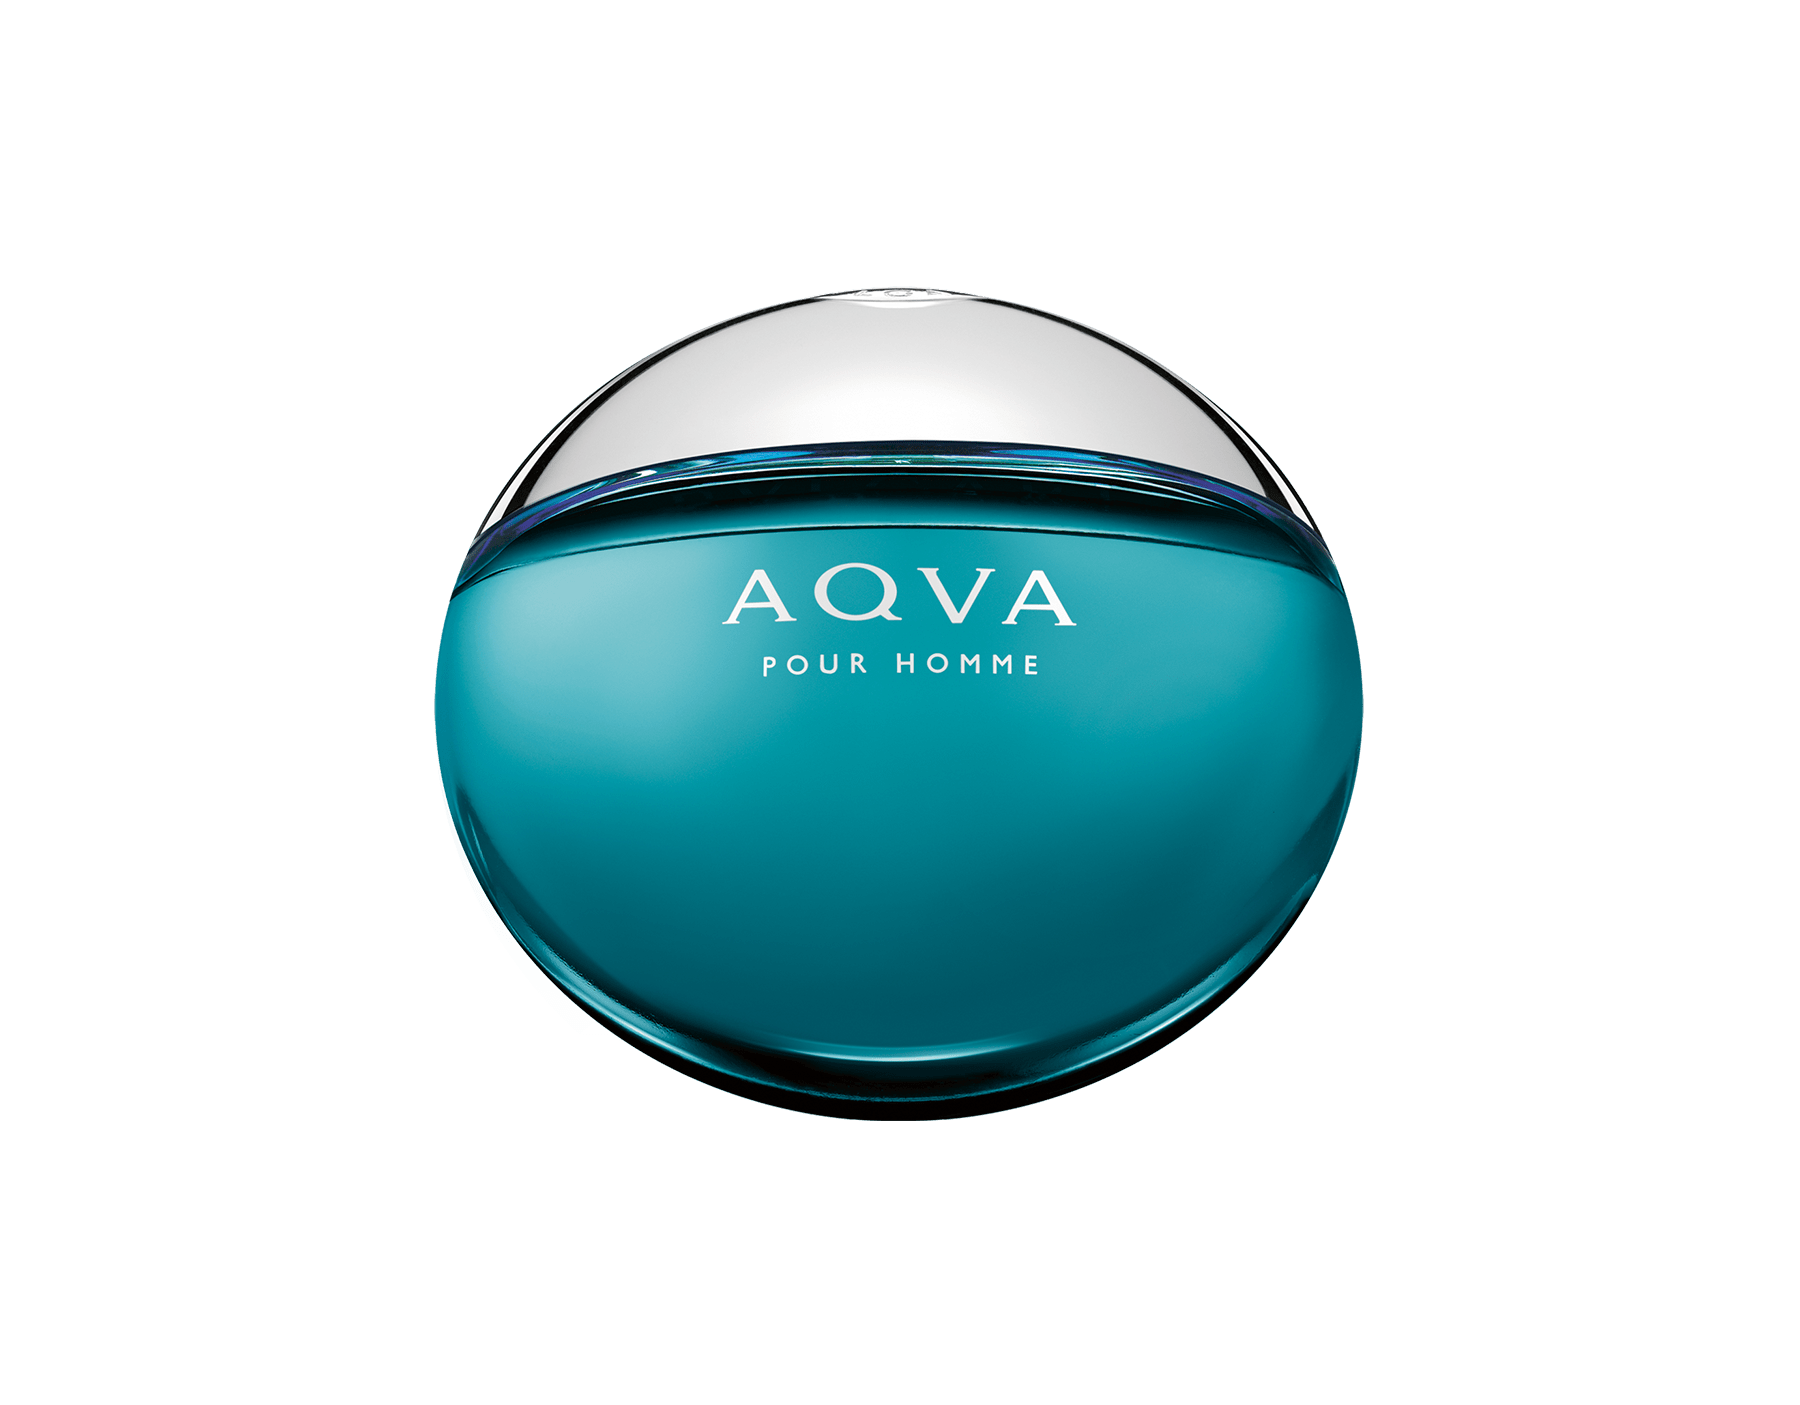 An aquatic eau de toilette. 40255 image 1